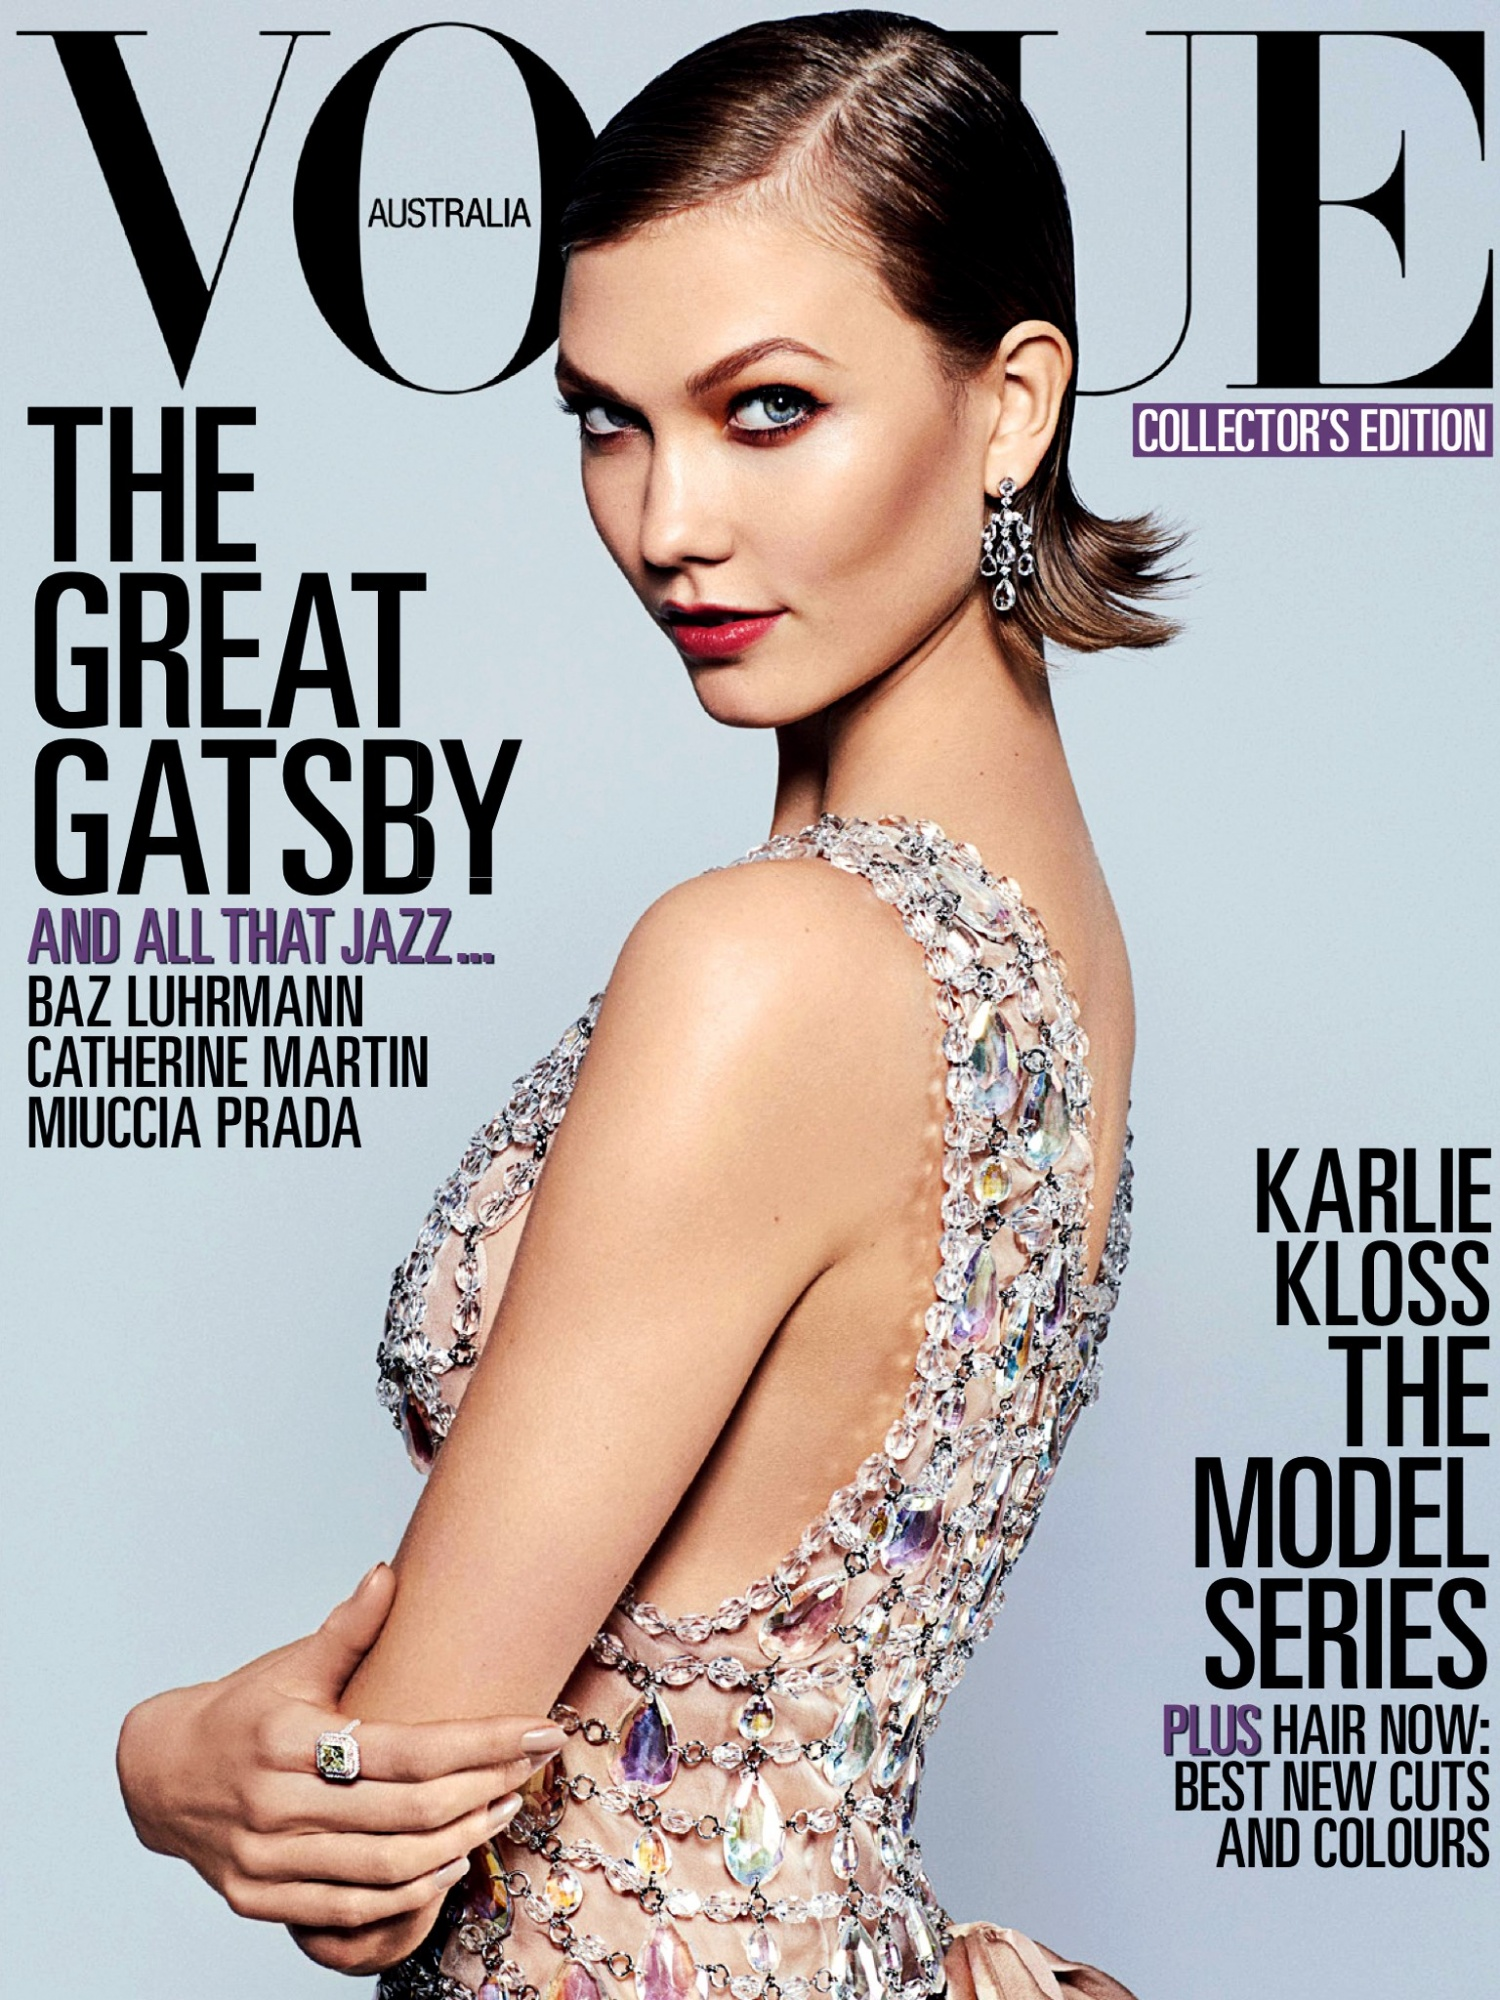 fashion_scans_remastered-karlie_kloss-vogue_australia-may_2013-scanned_by_vampirehorde-hq-1.jpg